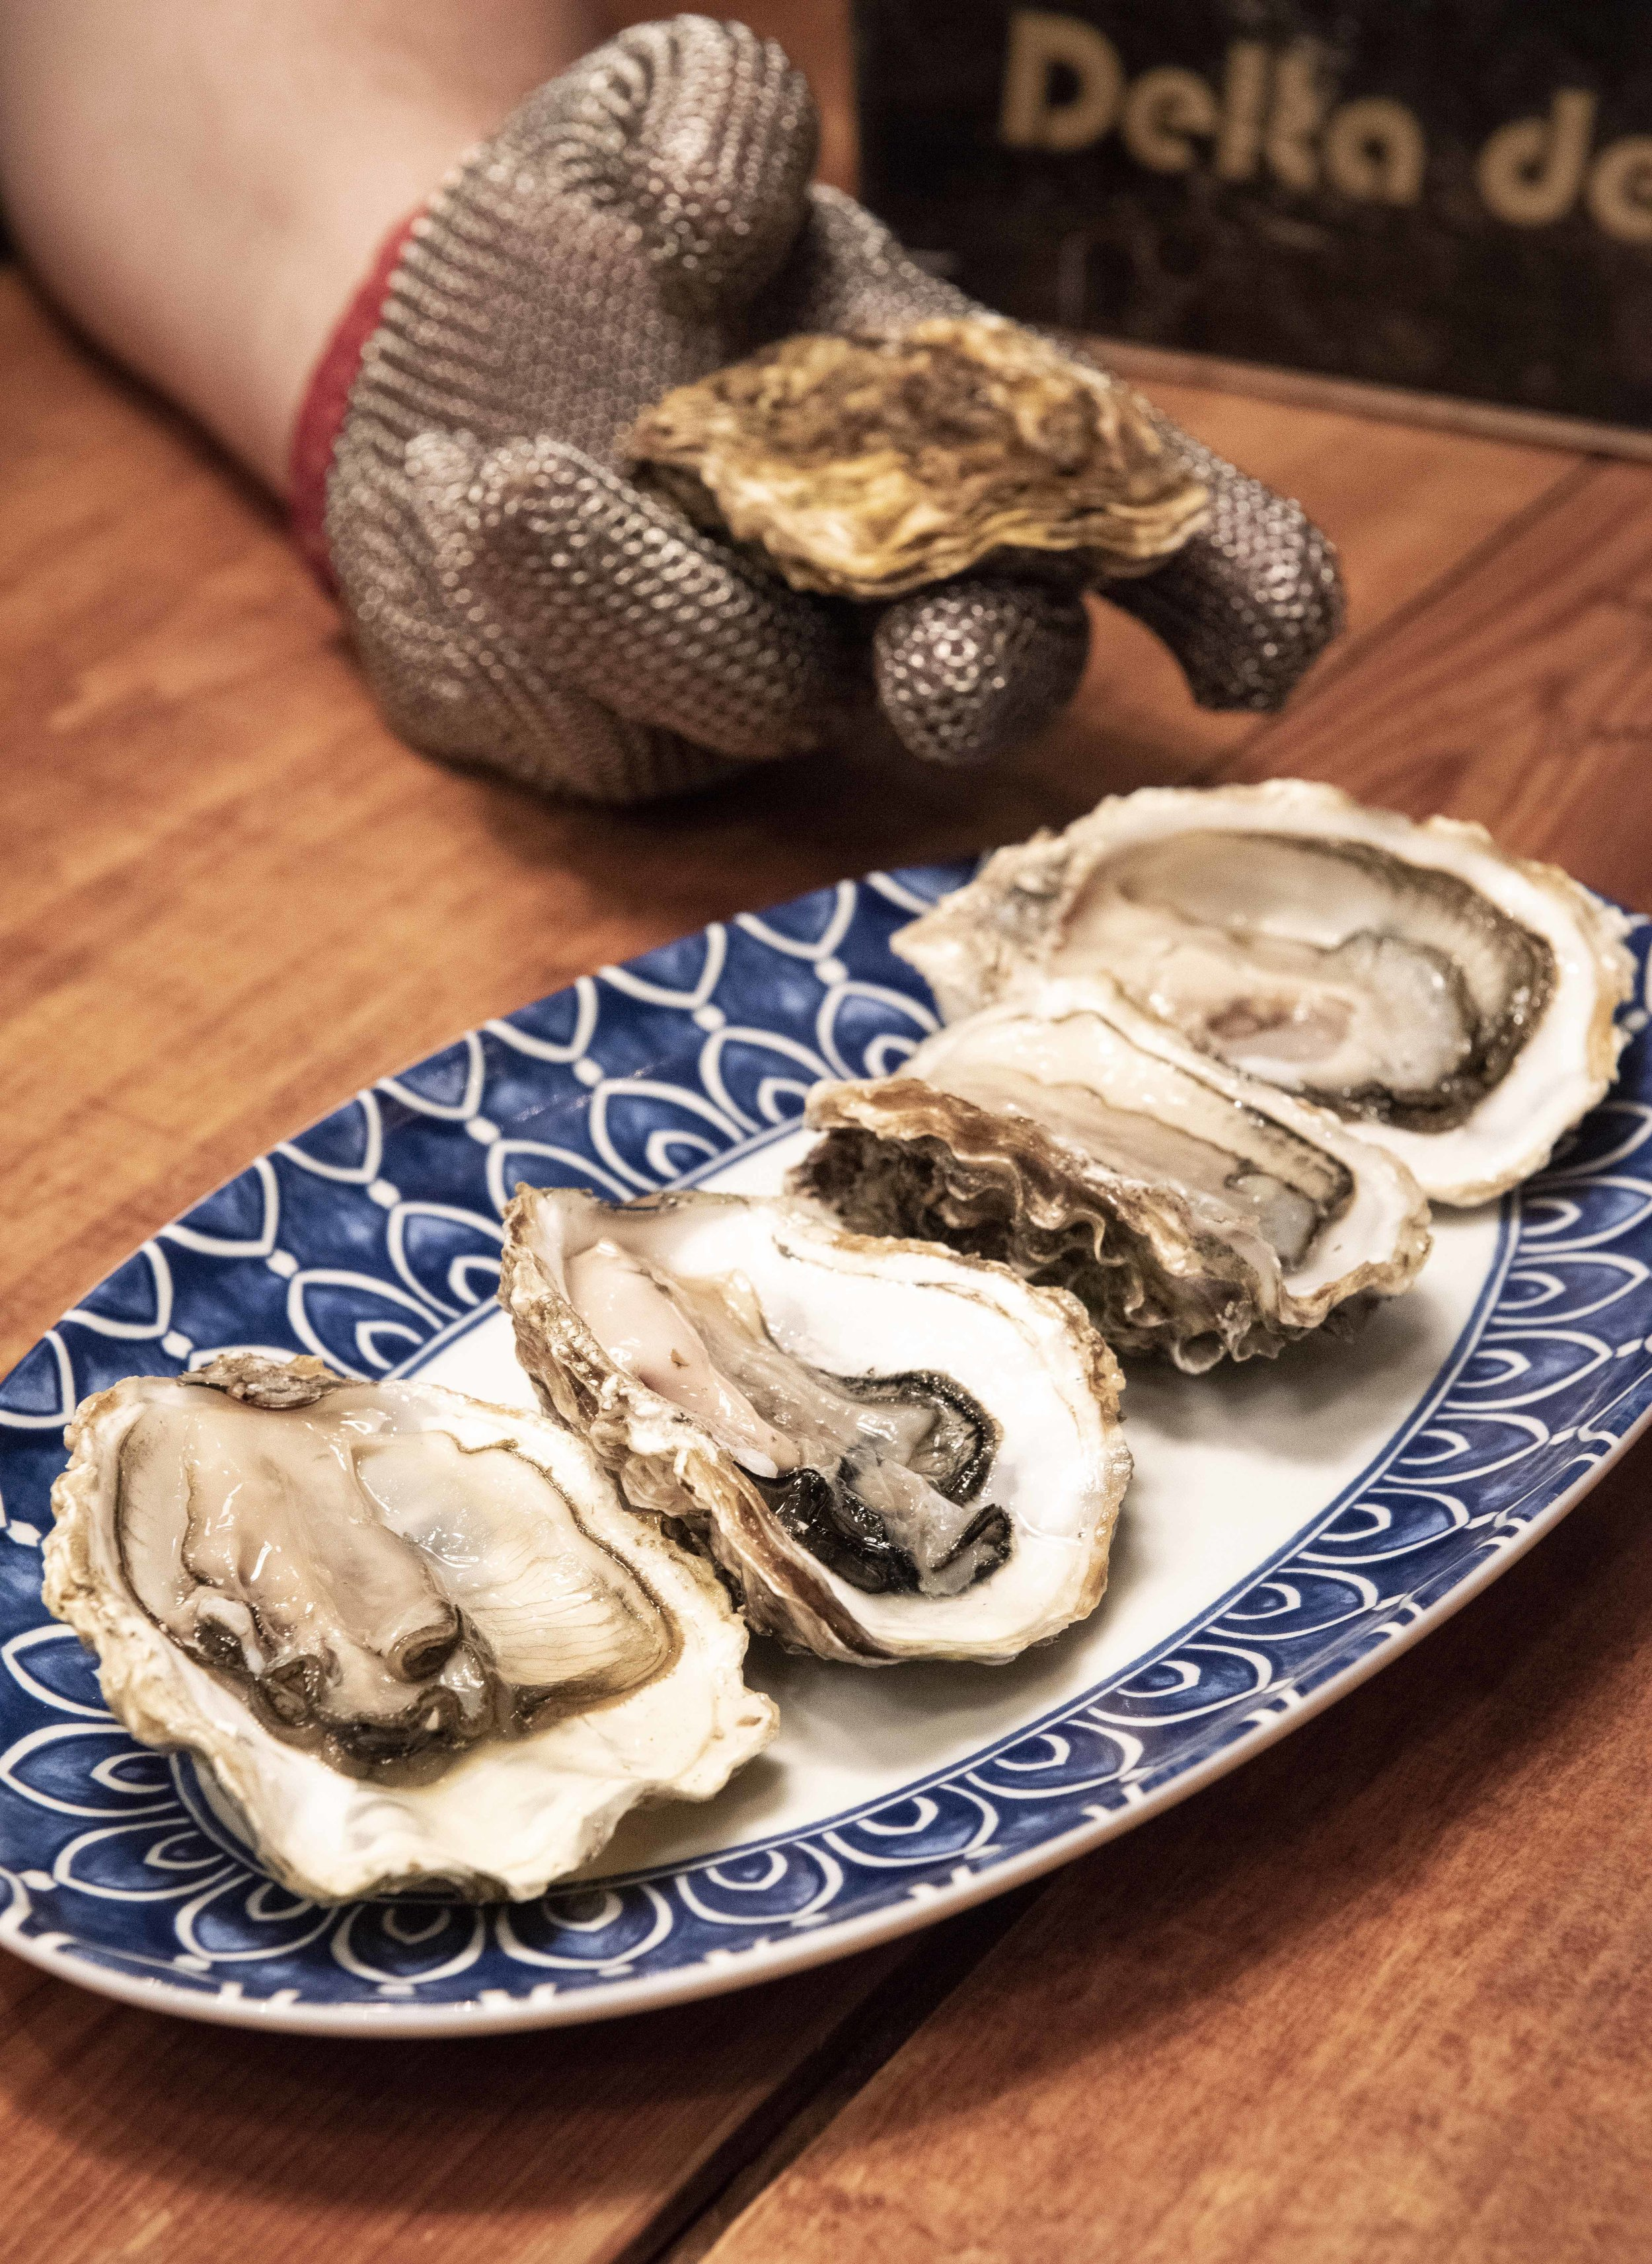 Oysters from the Ebro Delta. Photo © Barcelona Food Experience.